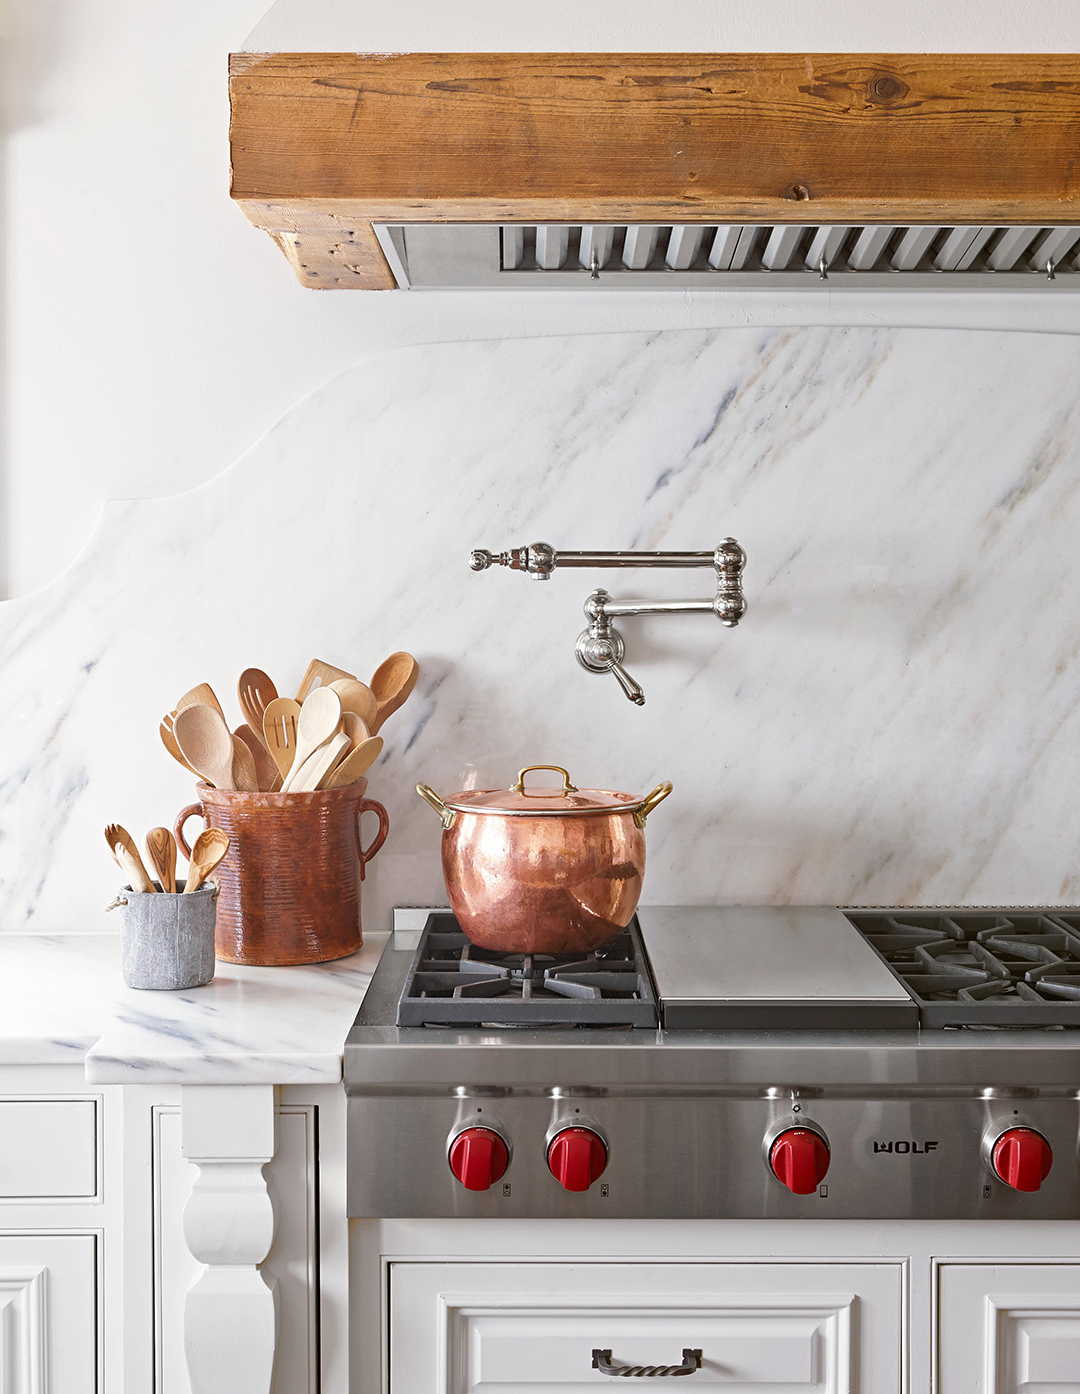 white kitchen stove range with cooking pot and utencils